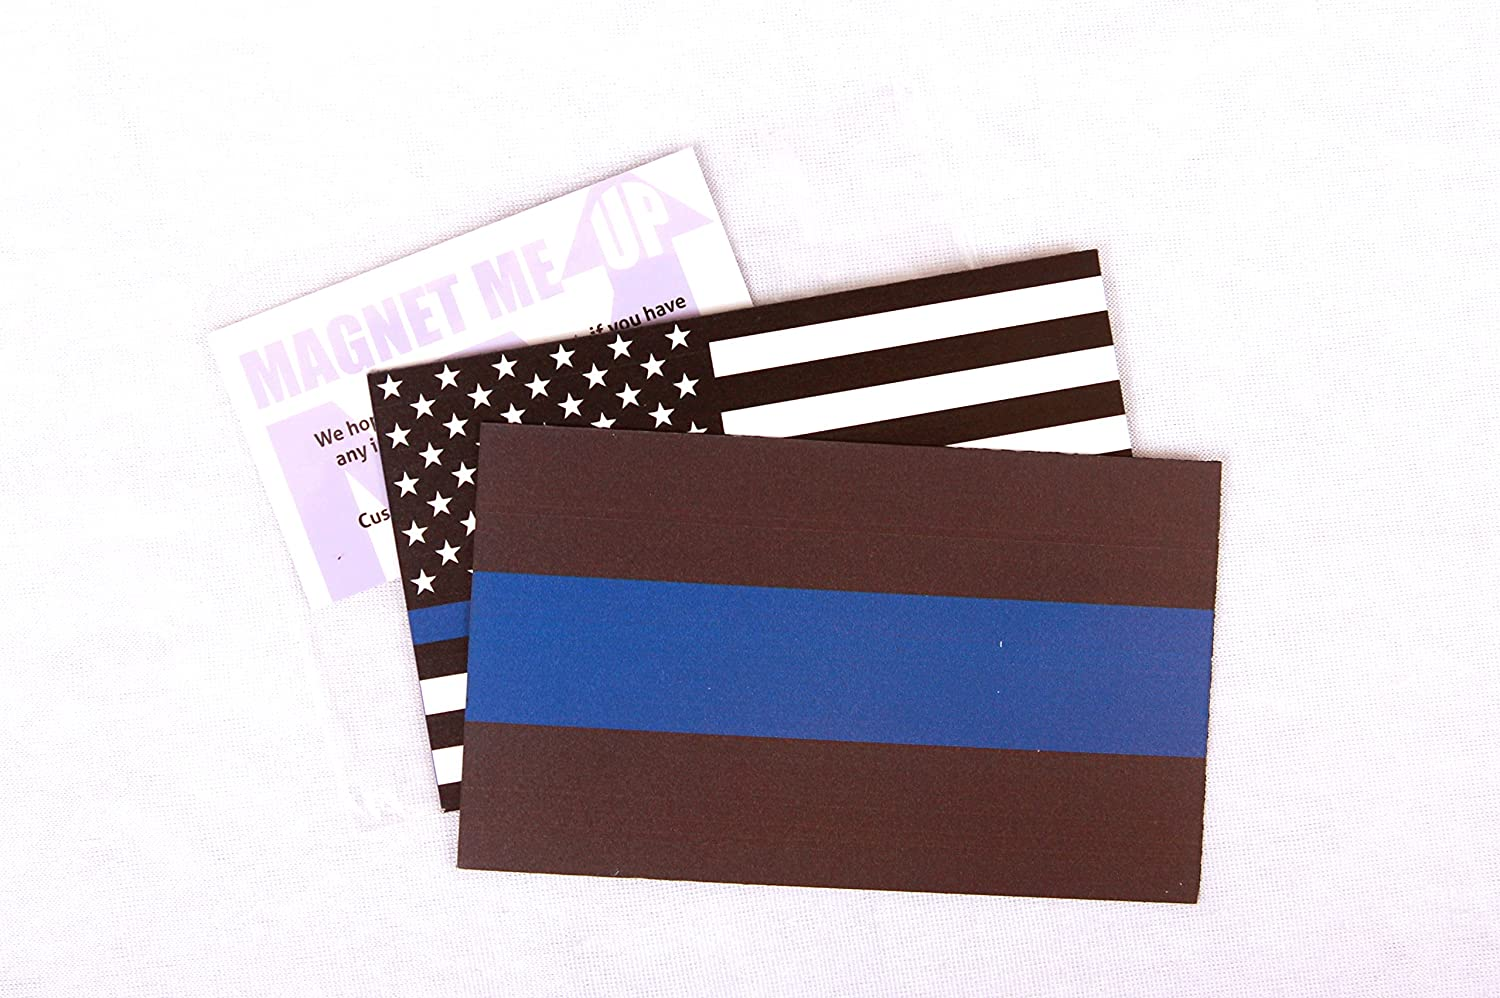 in Support of Police and Law Enforcement Officers Heavy Duty for Car Truck SUV 2 Pack Thin Blue Line and Thin Blue Line American Flag Magnet Decal 3x5